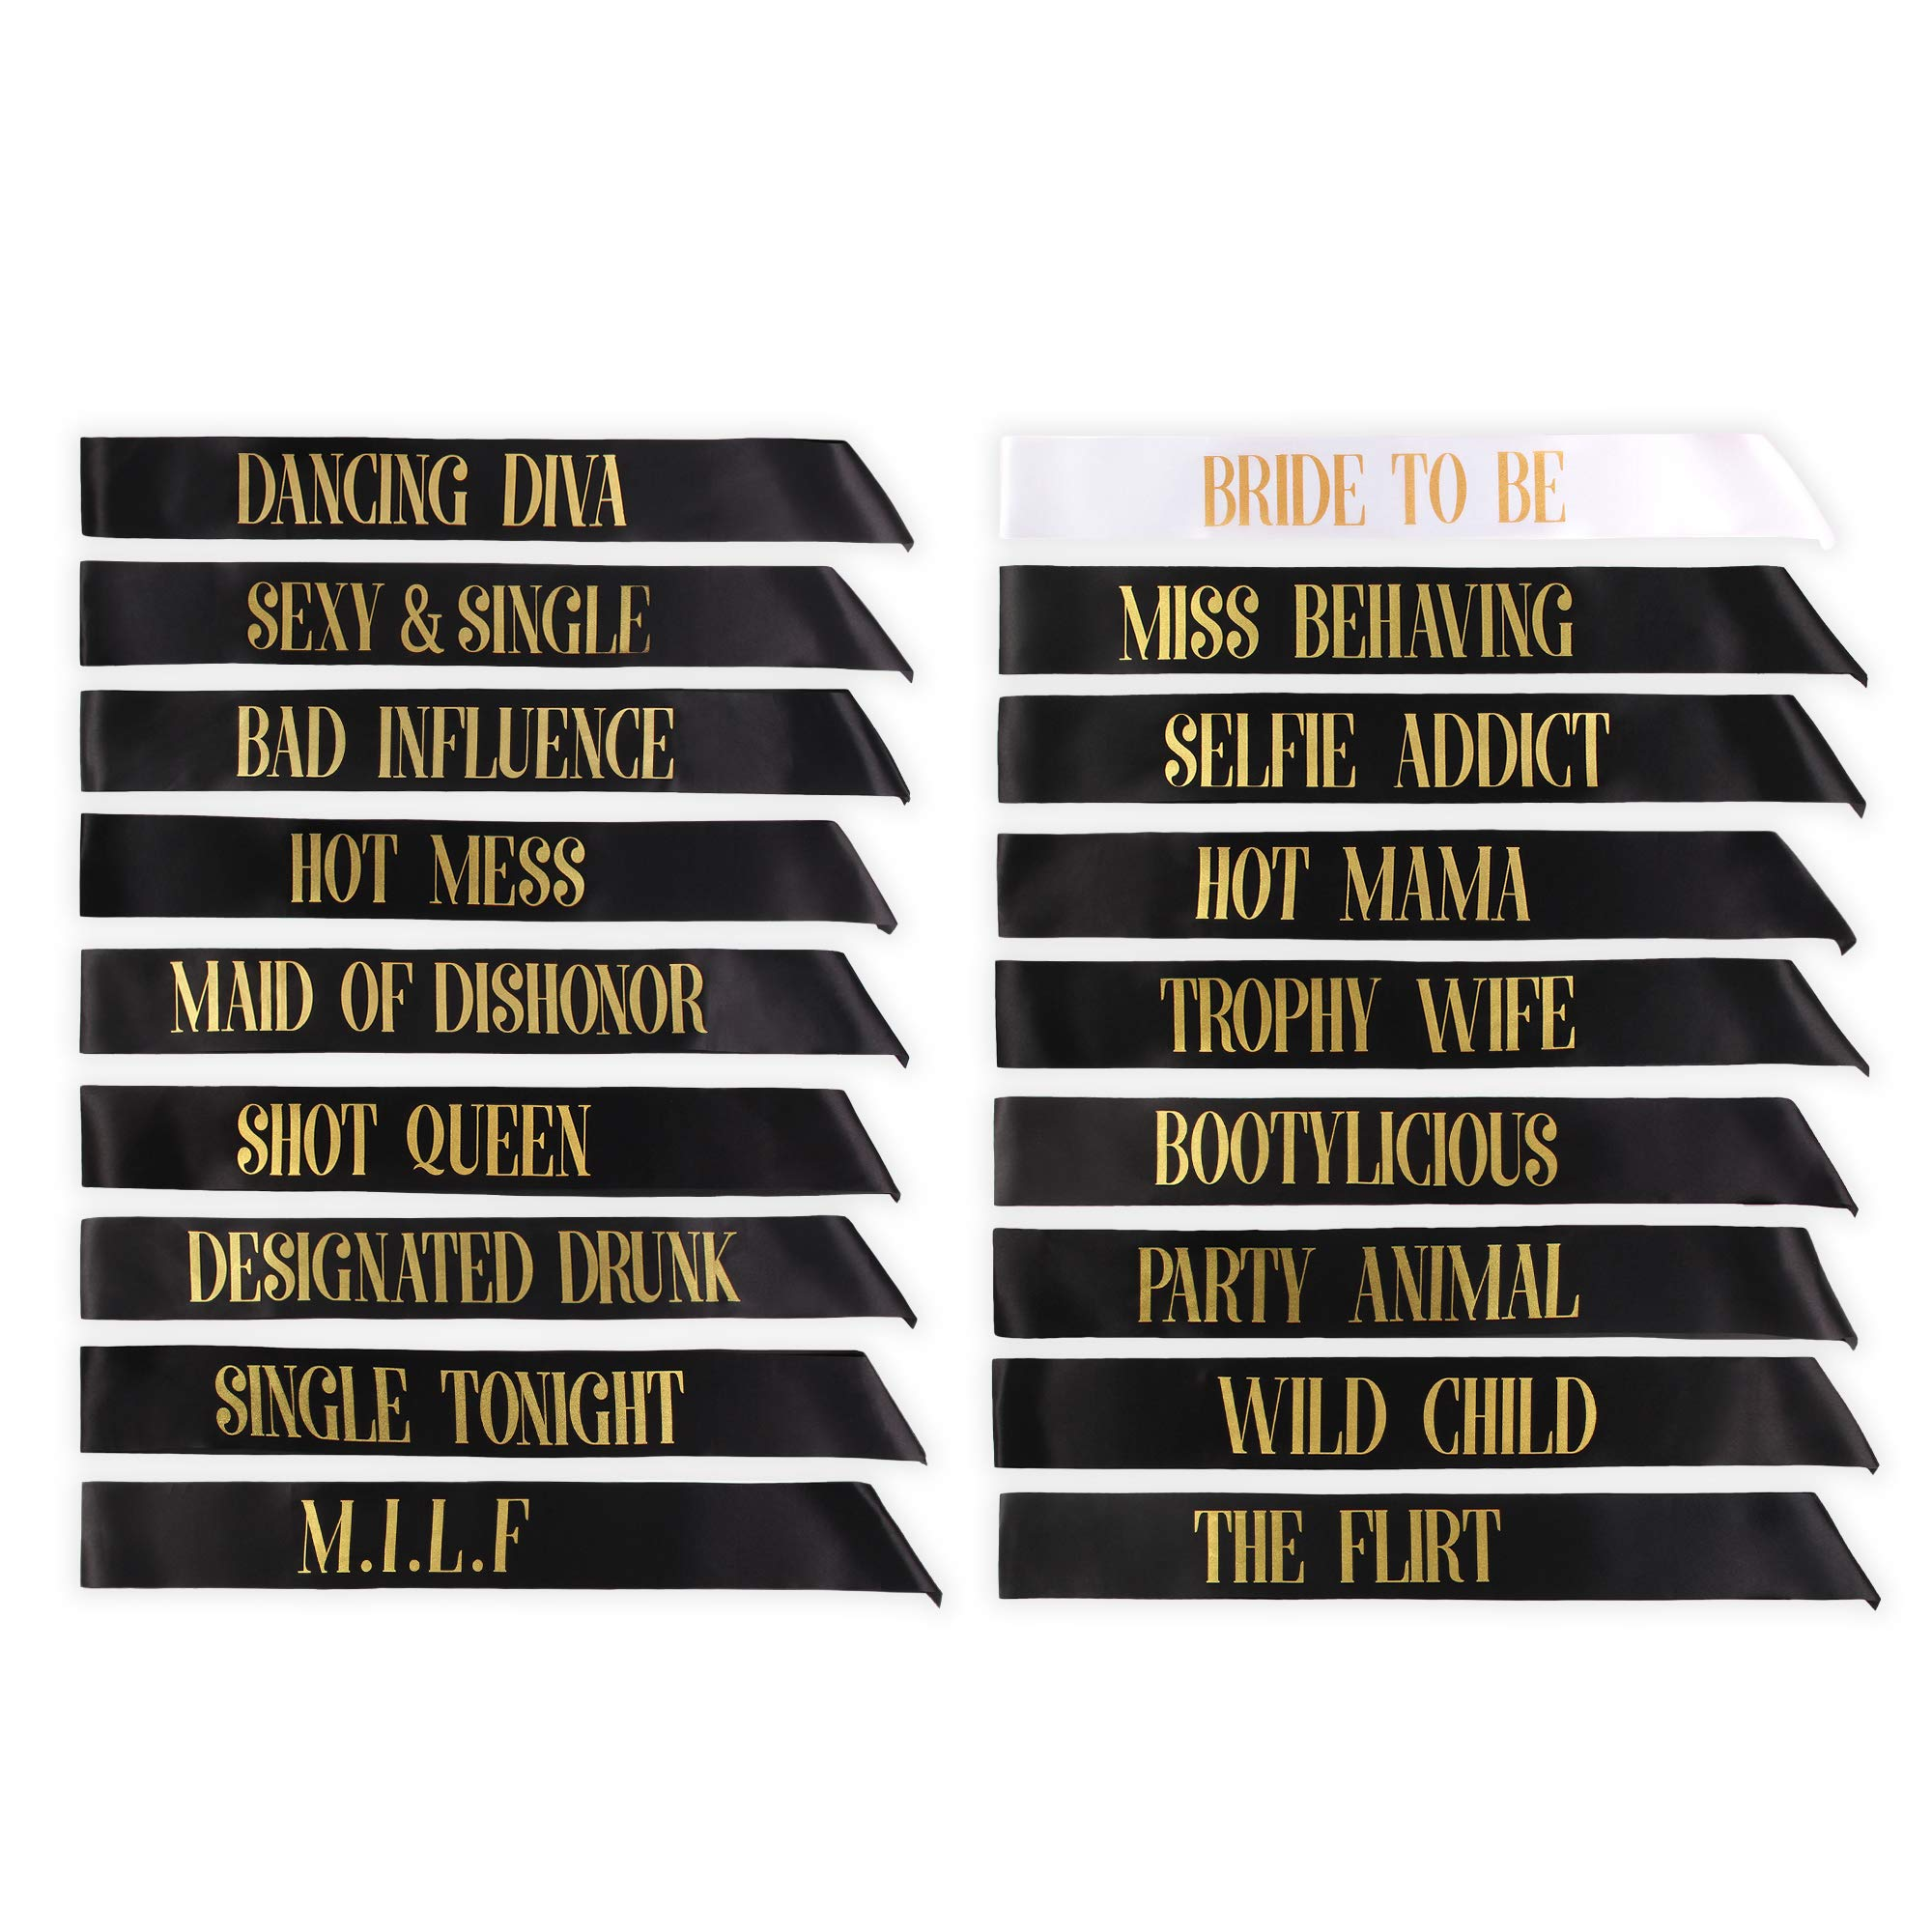 Bachelorette Party Sashes- Bride to Be Sash and Bride Tribe Sashes (Black, 18 Pack)